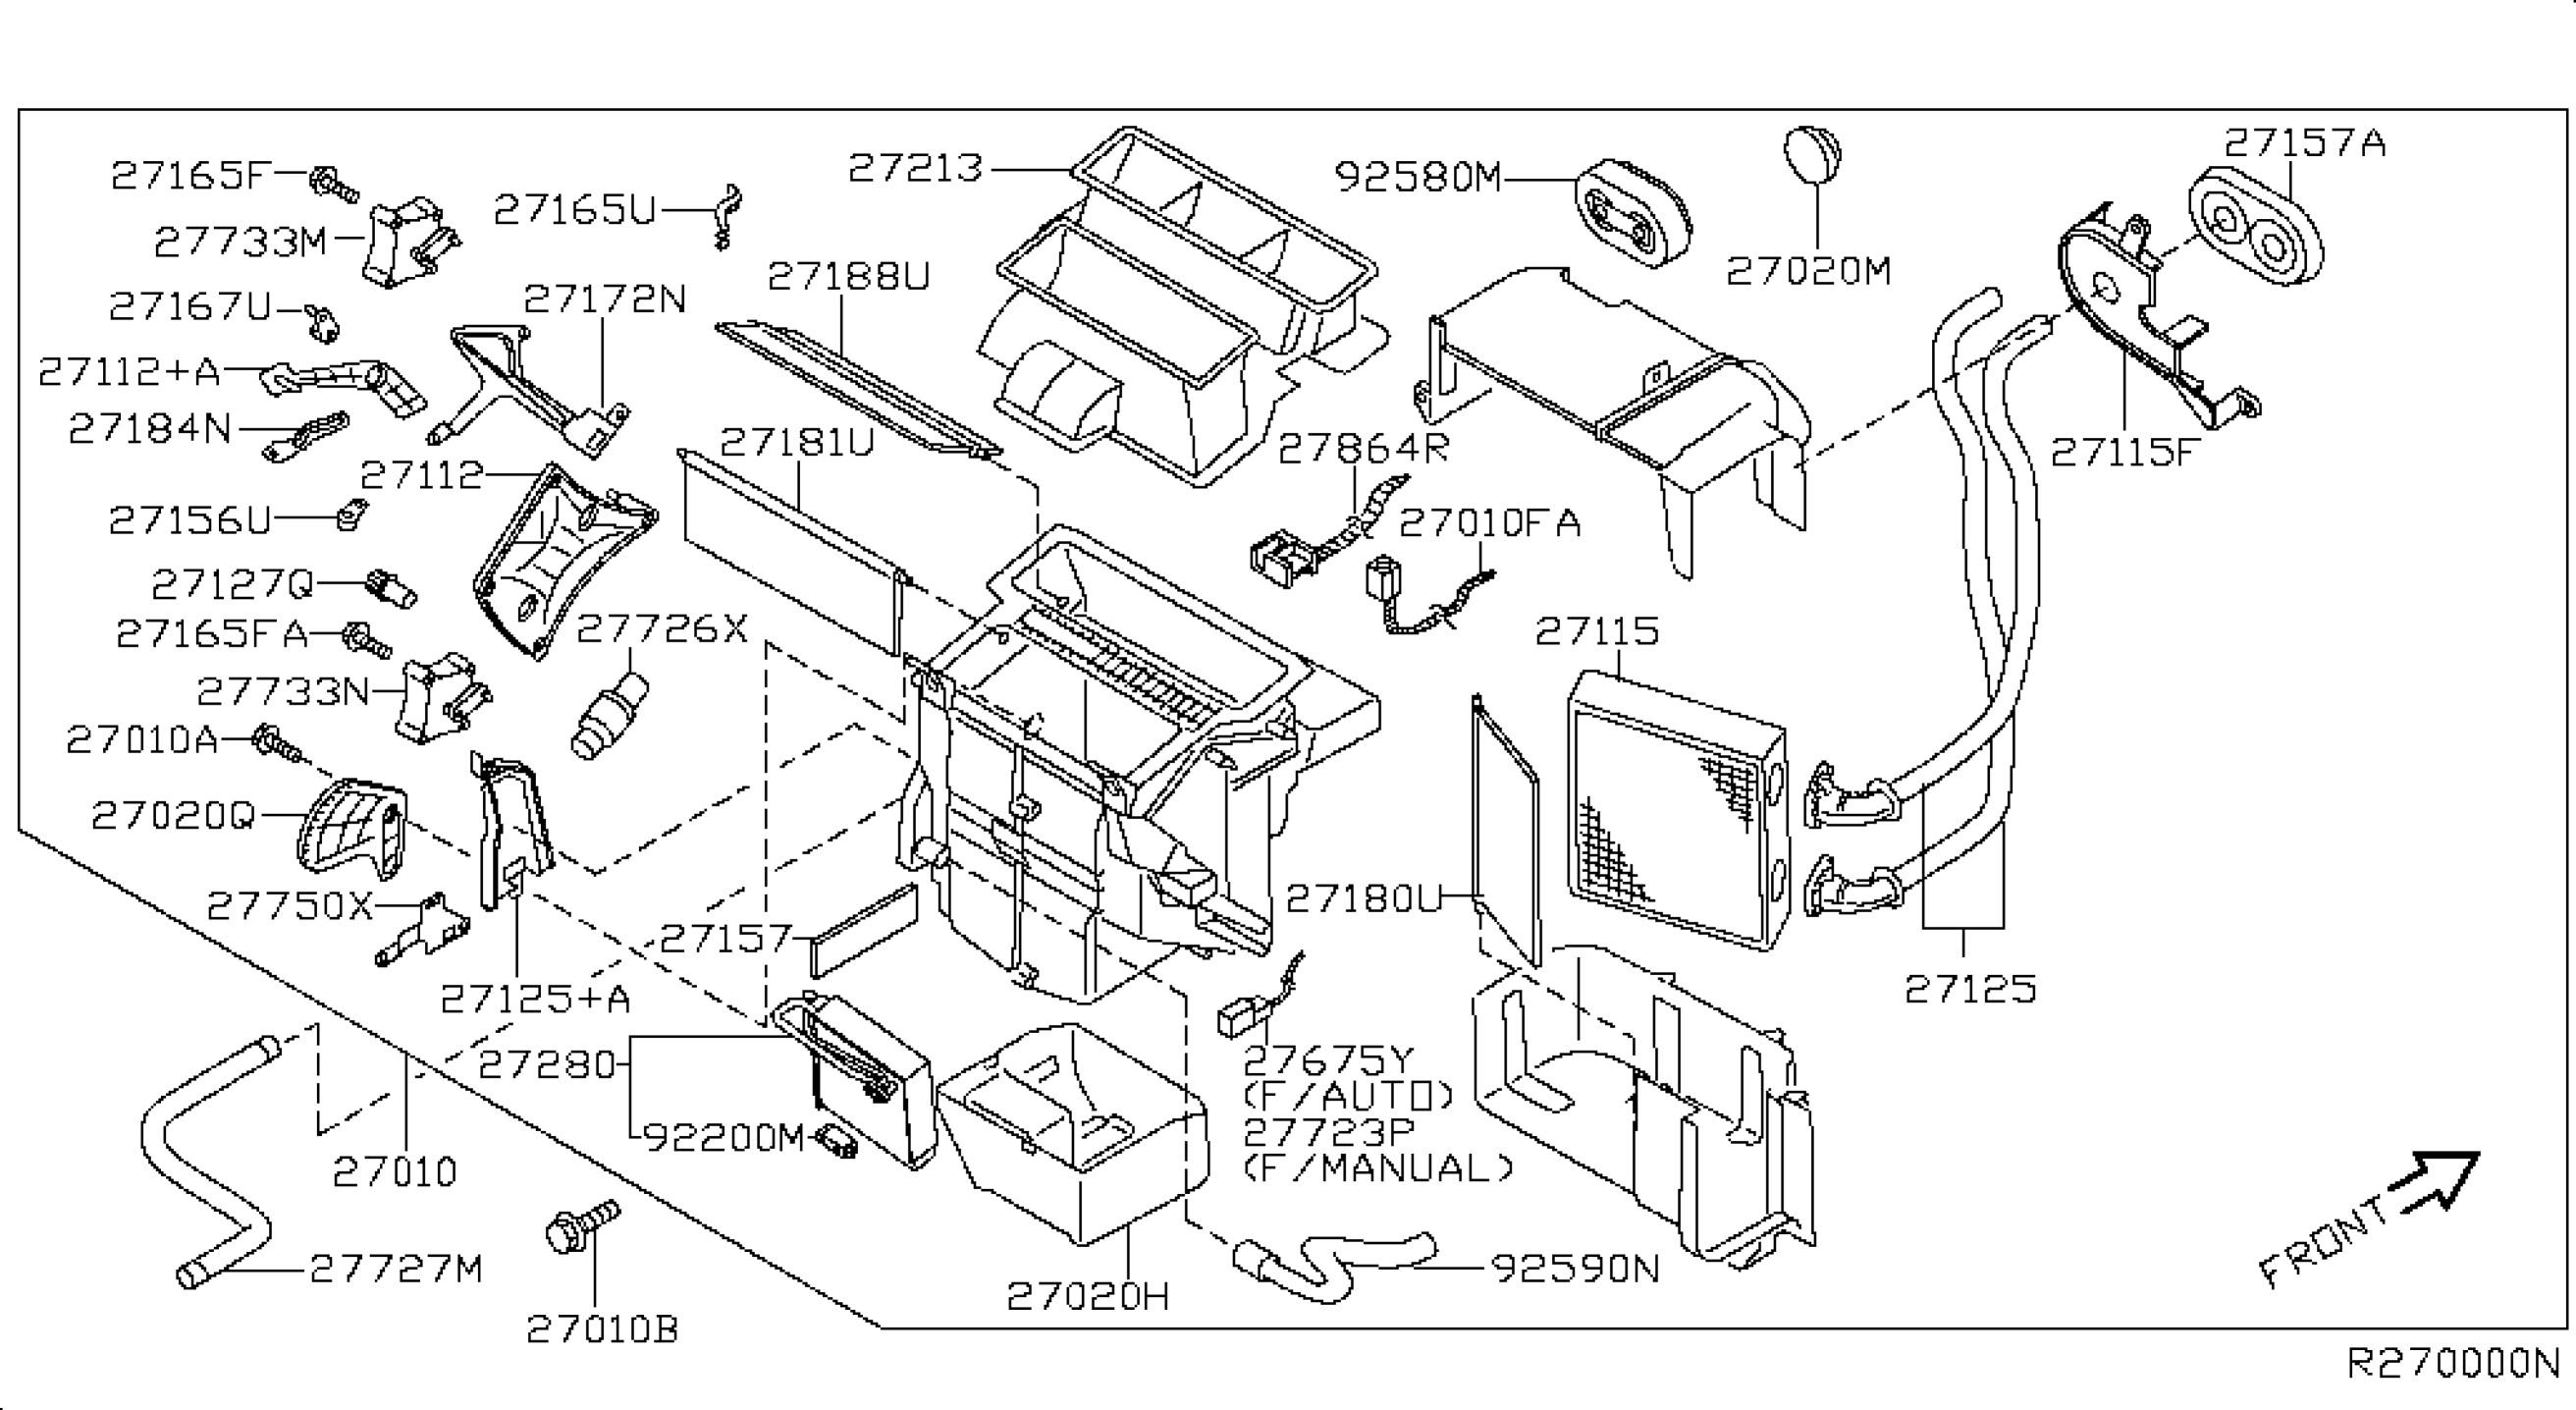 5vxq9 Ford 250 Looking  plete Vacuum Diagram 1991 together with 1990 Jeep Wrangler Stereo Wiring Diagram together with P 0996b43f802d7d87 also 49yql Nissan Datsun D21 1993 Nissan D21 4x4 Pickup 2 4 furthermore 1984 Nissan 720 Pick Up Vacuum Diagram. on 87 nissan d21 4x4 wiring diagram